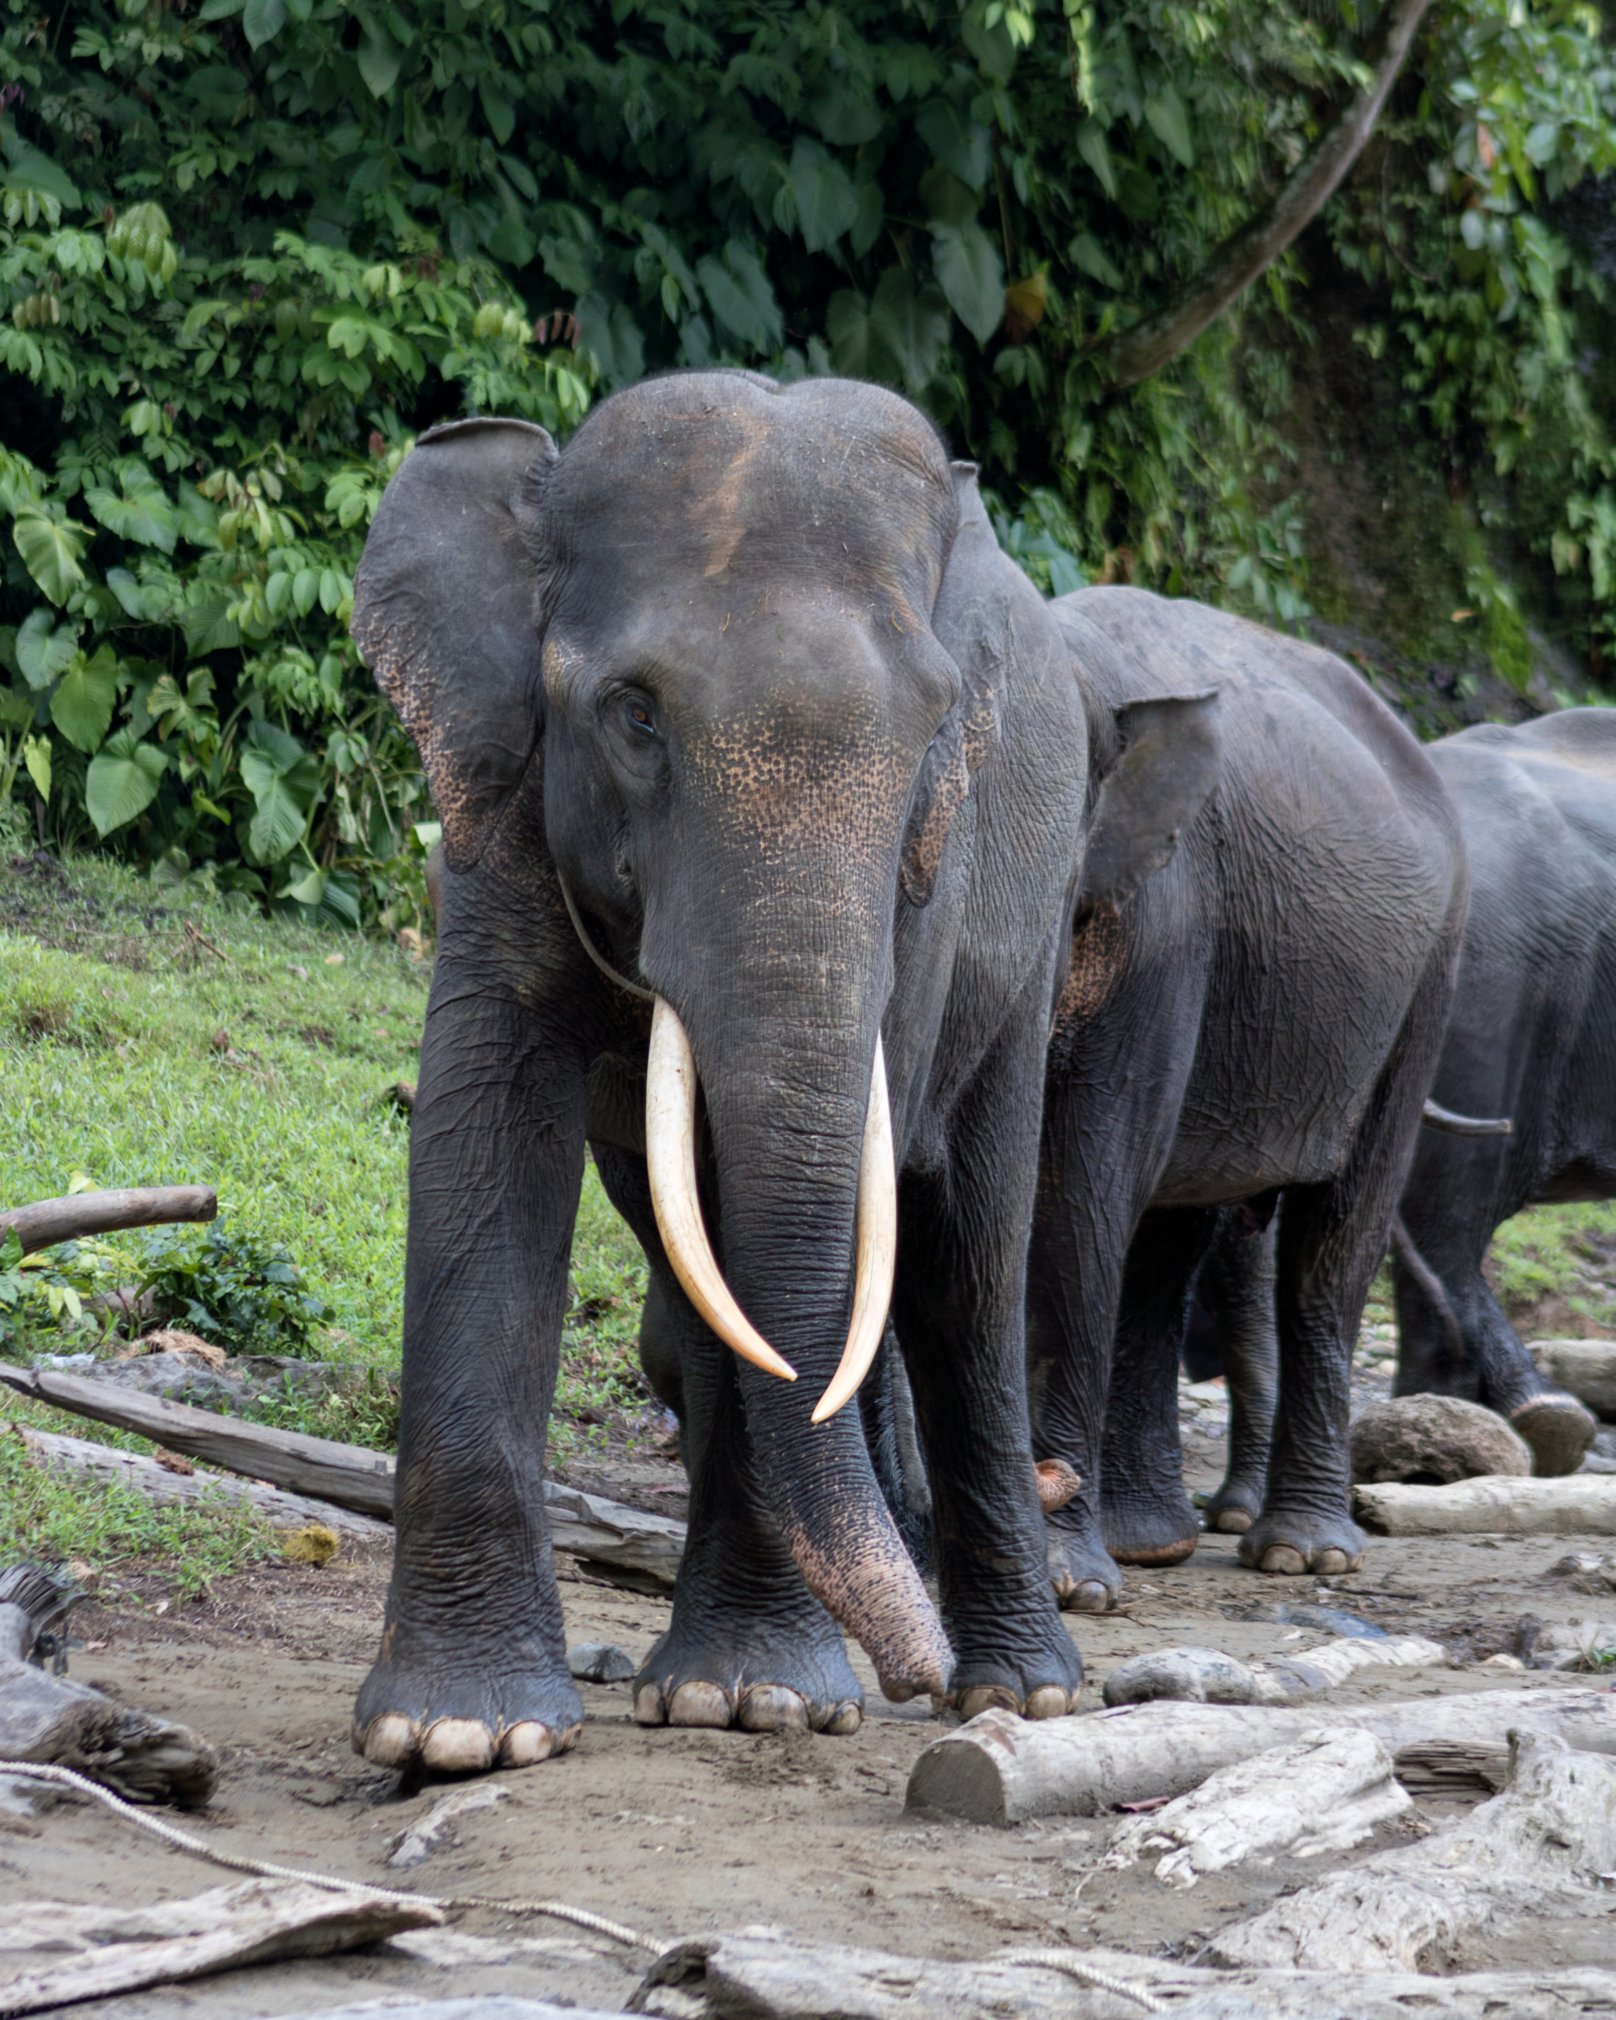 Wild elephants at Bukit Lawang